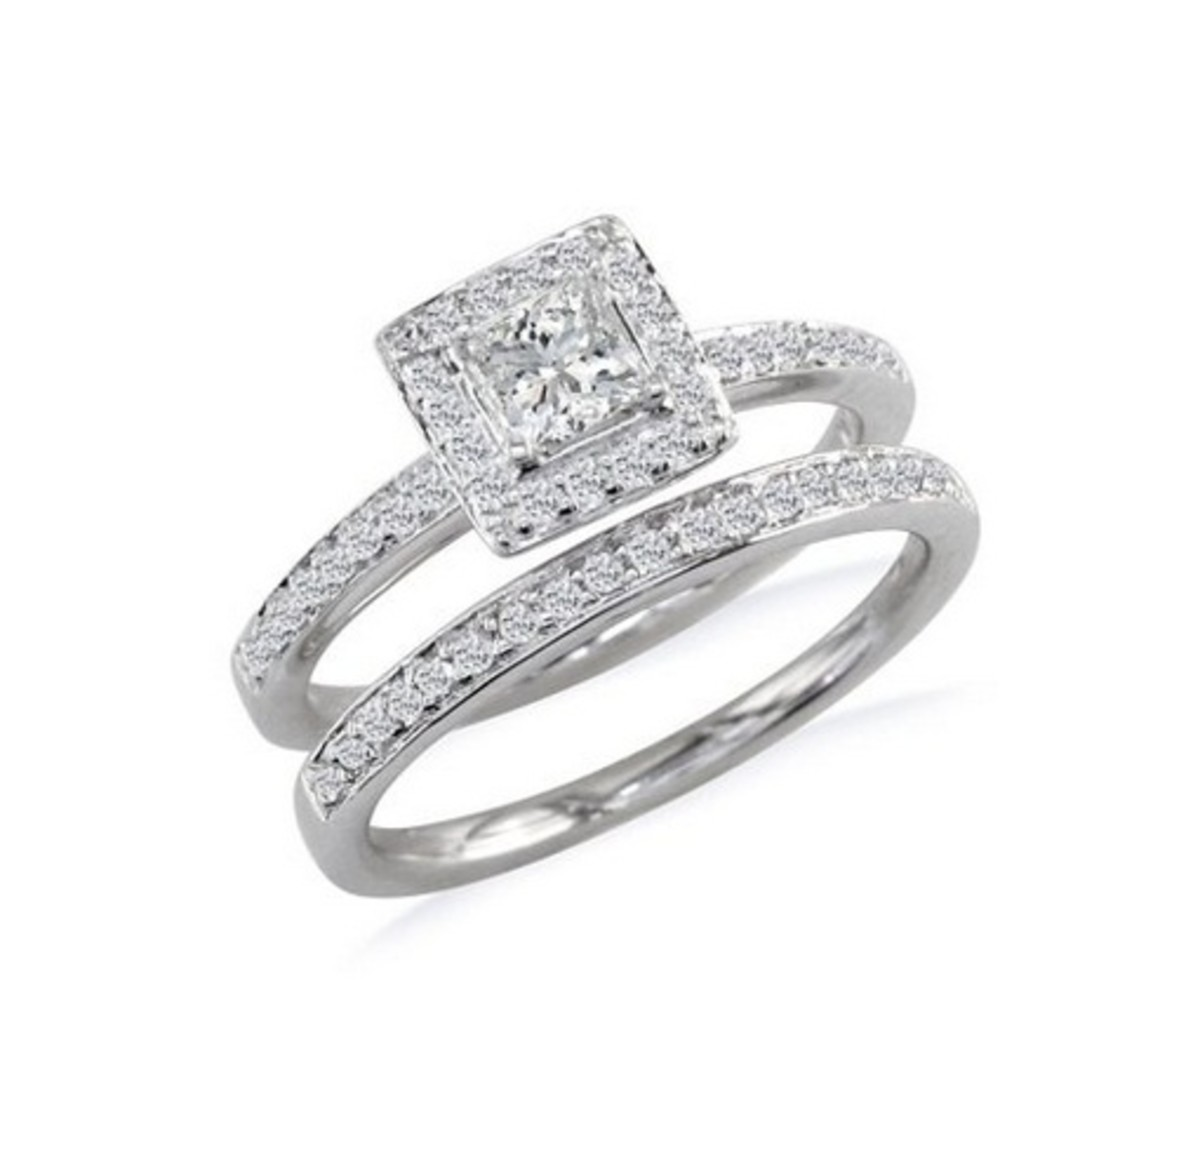 Princess Cut Diamond Bridal Ring Set